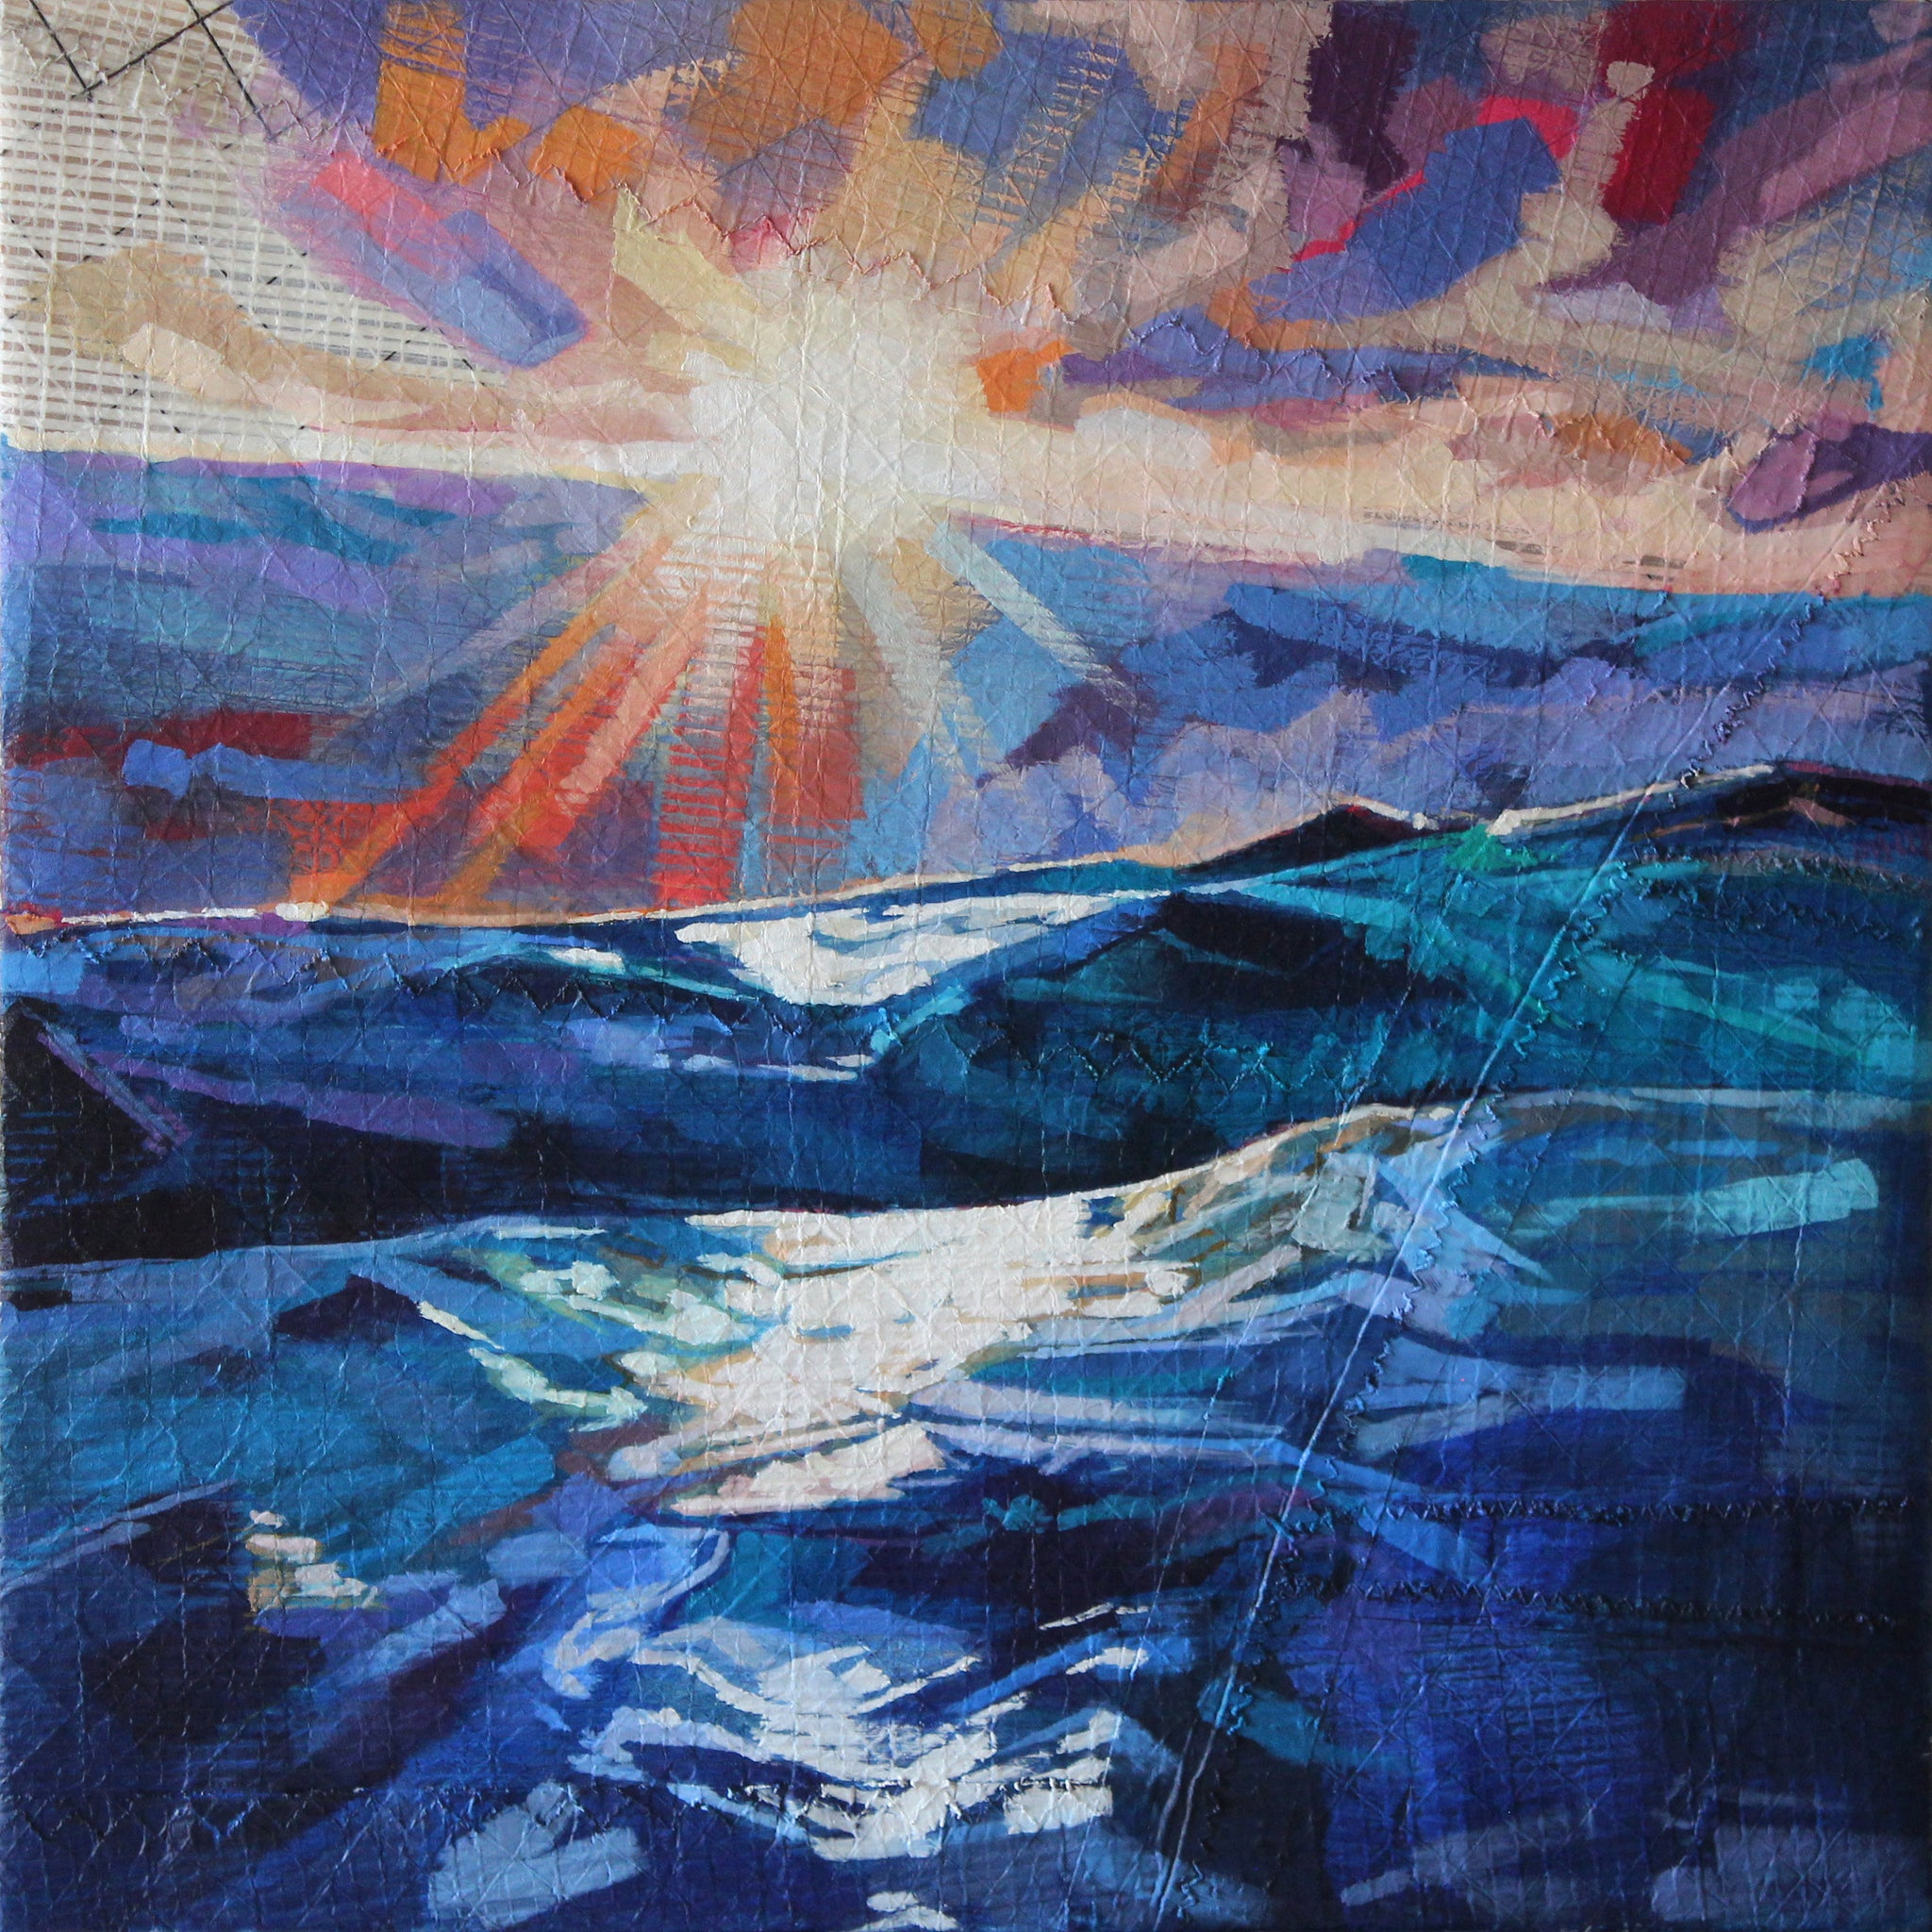 Stormy Seas At Tullan - Contemporary art from Ireland. Paintings & prints by Irish seascape & landscape artist Kevin Lowery.